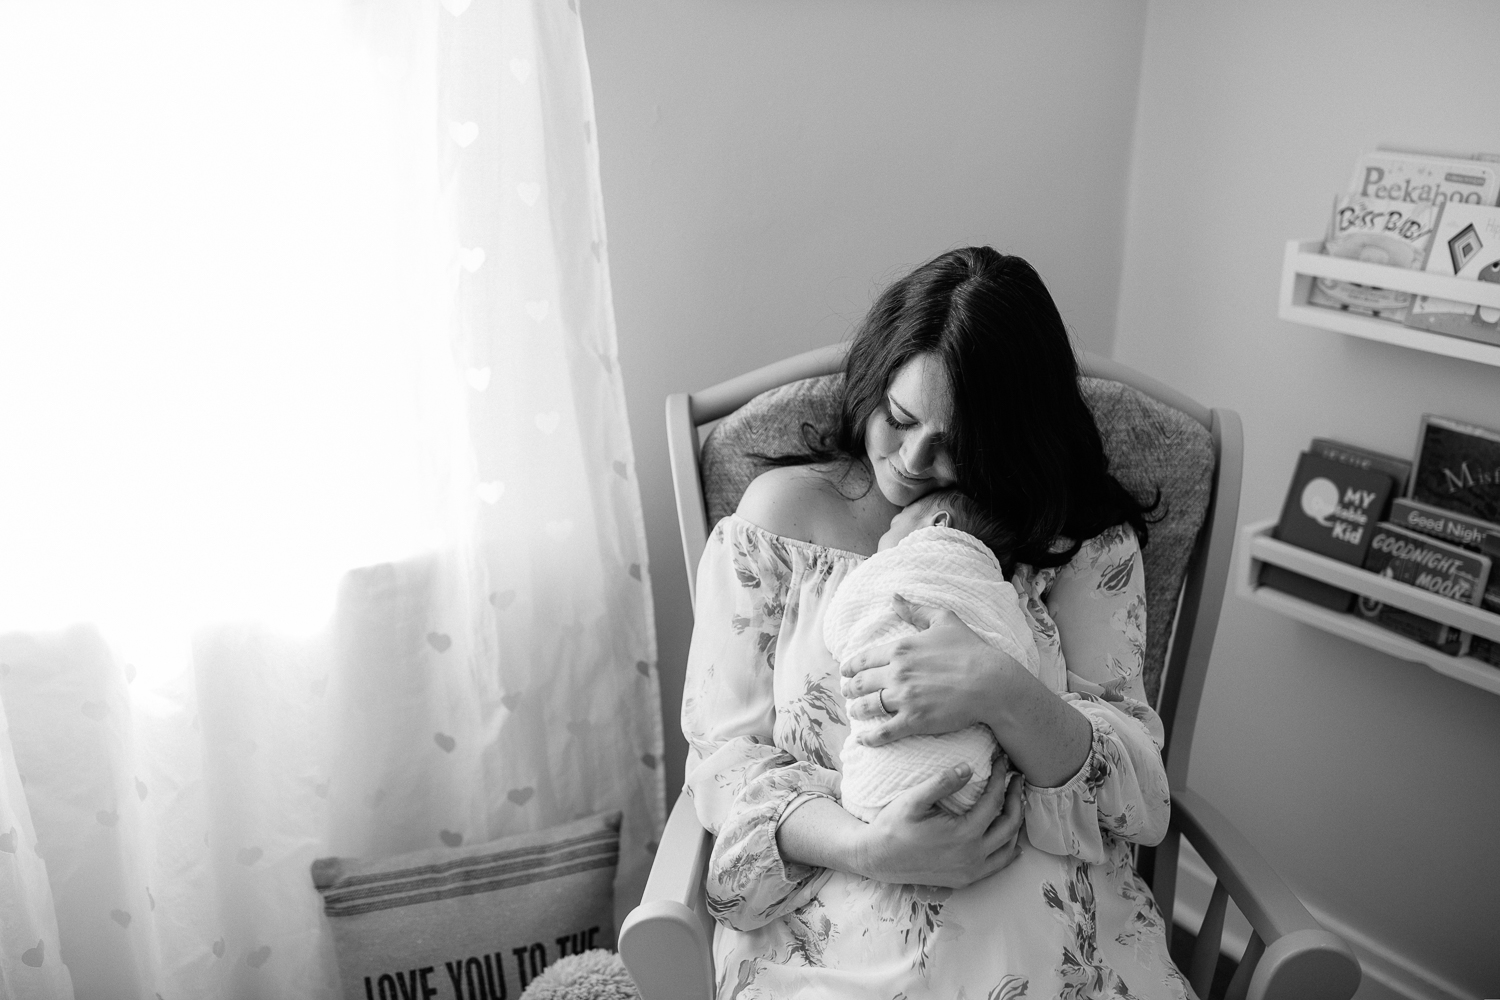 new mother sitting in nursery rocker snuggling 3 week old baby boy on her chest, mom's chin resting on son's head - Markham Lifestyle Photography